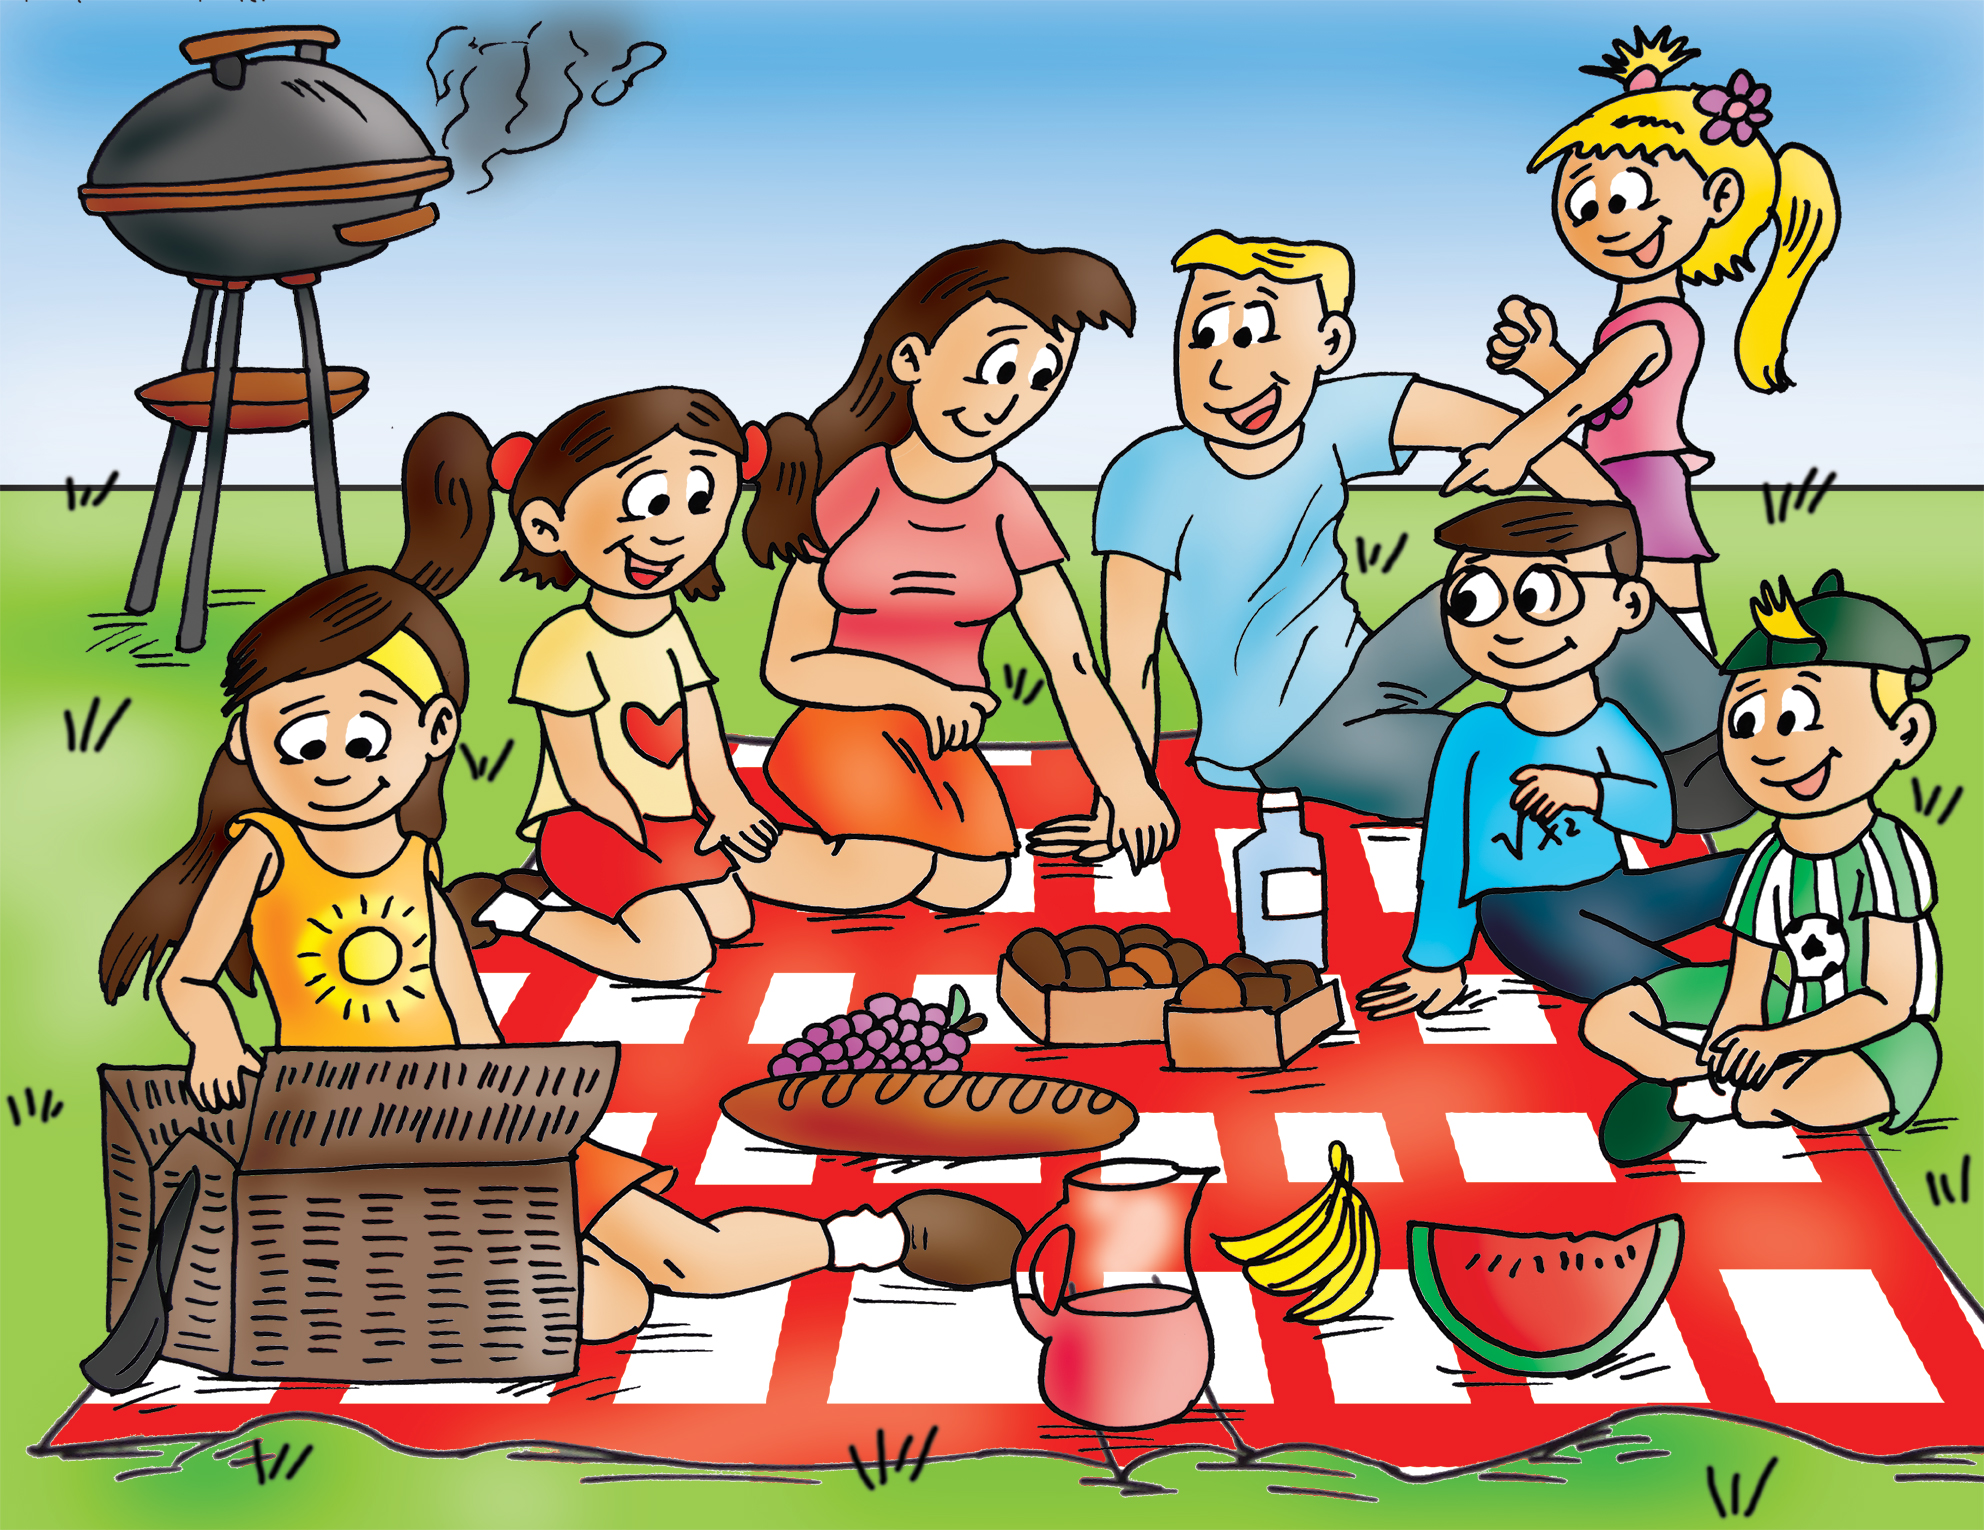 Family picnic clipart graphic freeuse Free Family Picnic Cliparts, Download Free Clip Art, Free Clip Art ... graphic freeuse